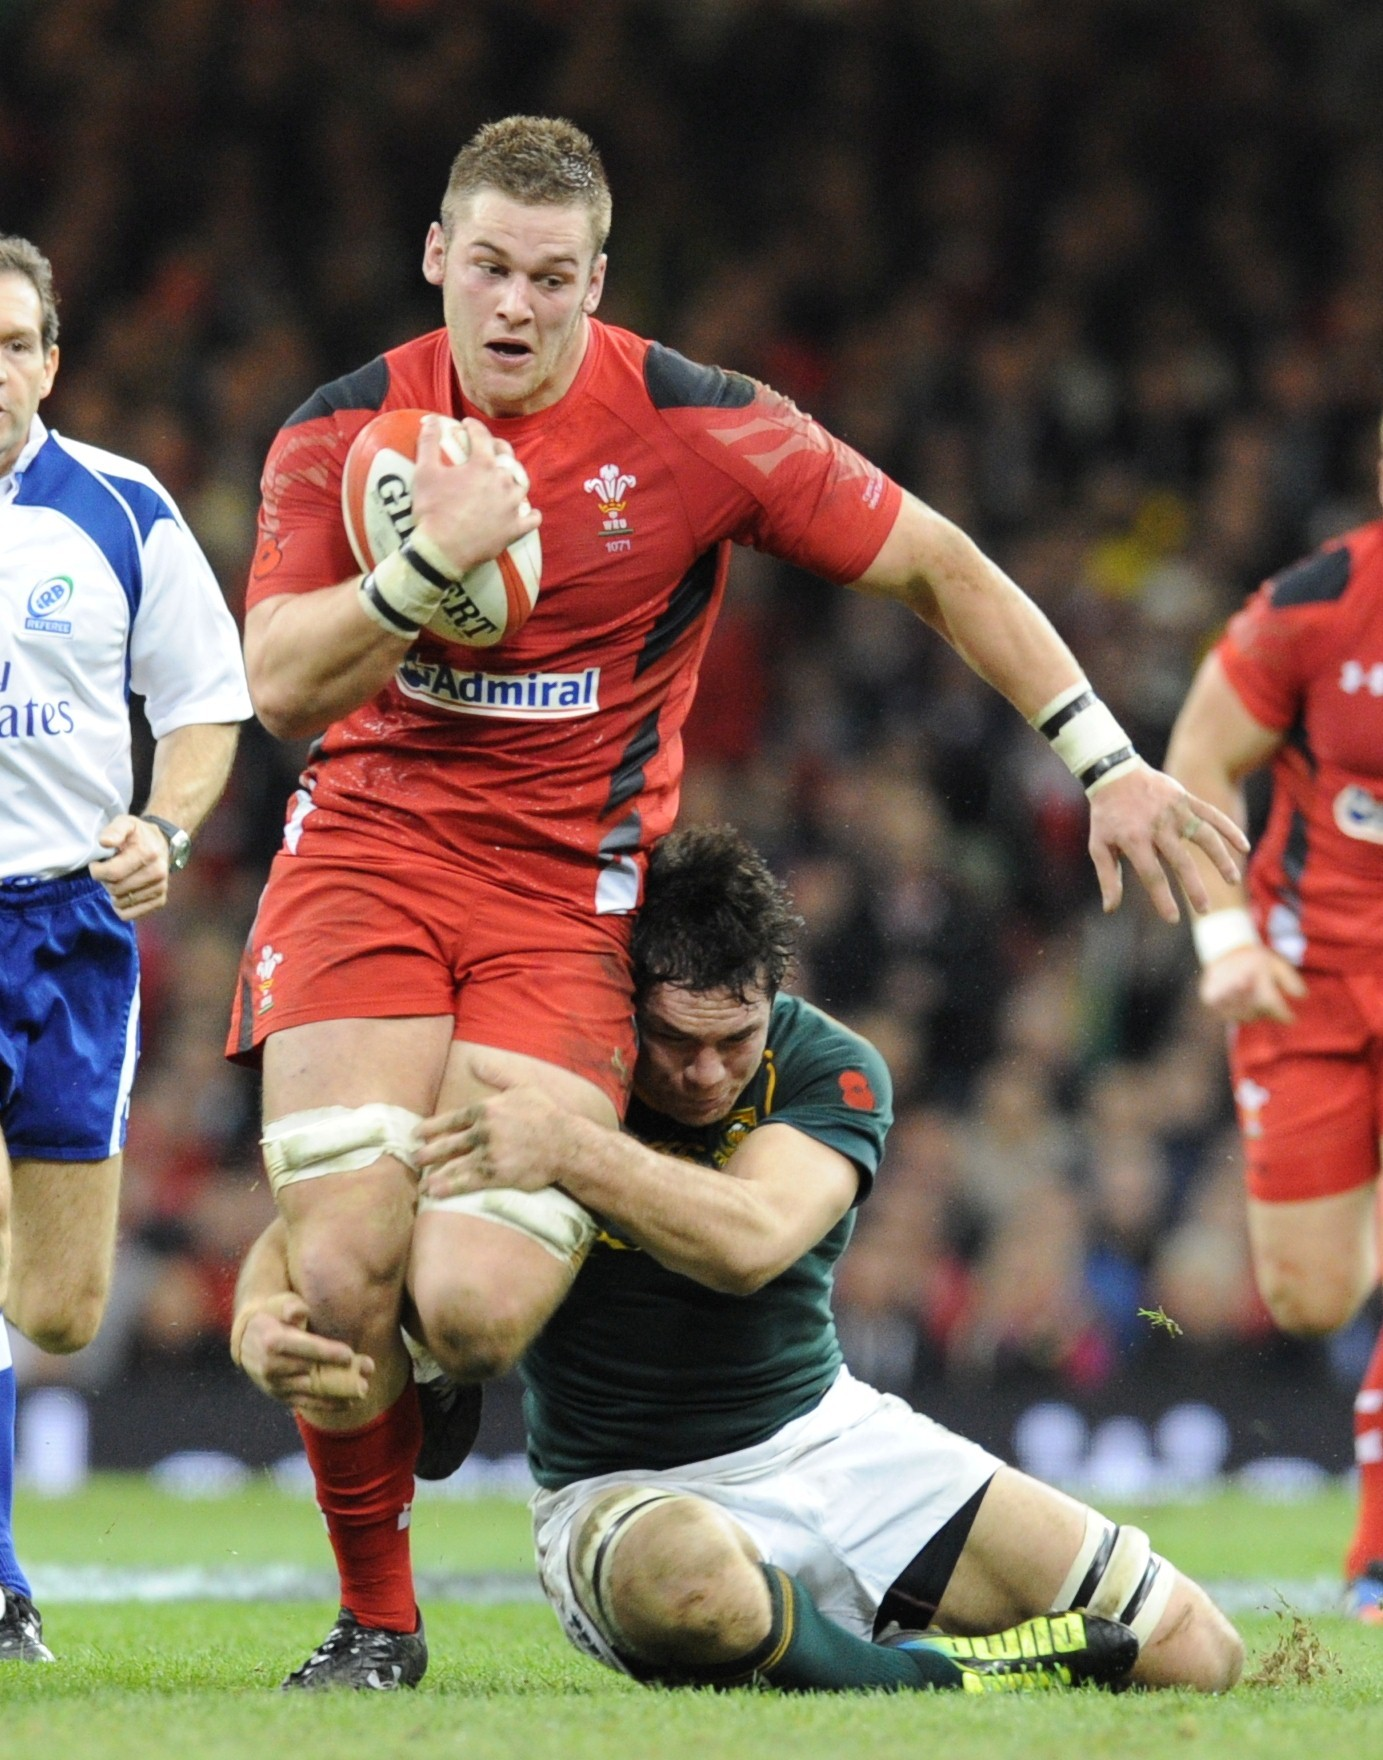 TOP TALENT: Wales and Racing Metro flanker Dan Lydiate